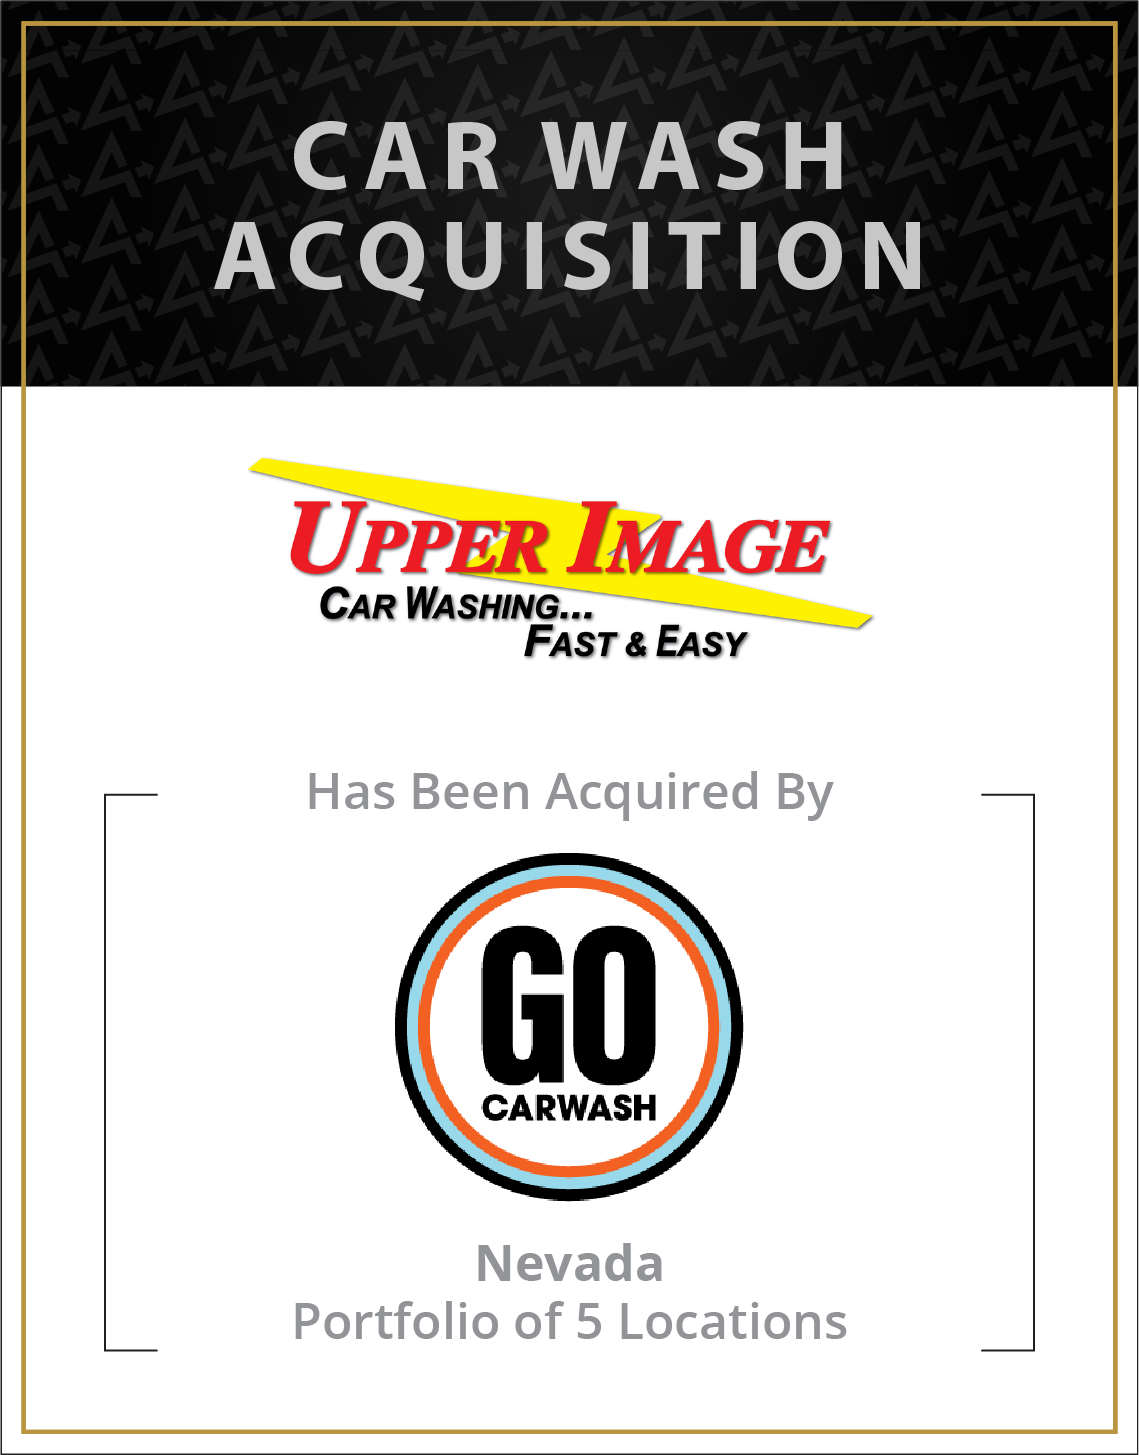 Upper Image Car Wash has been acquired by Go CarWash